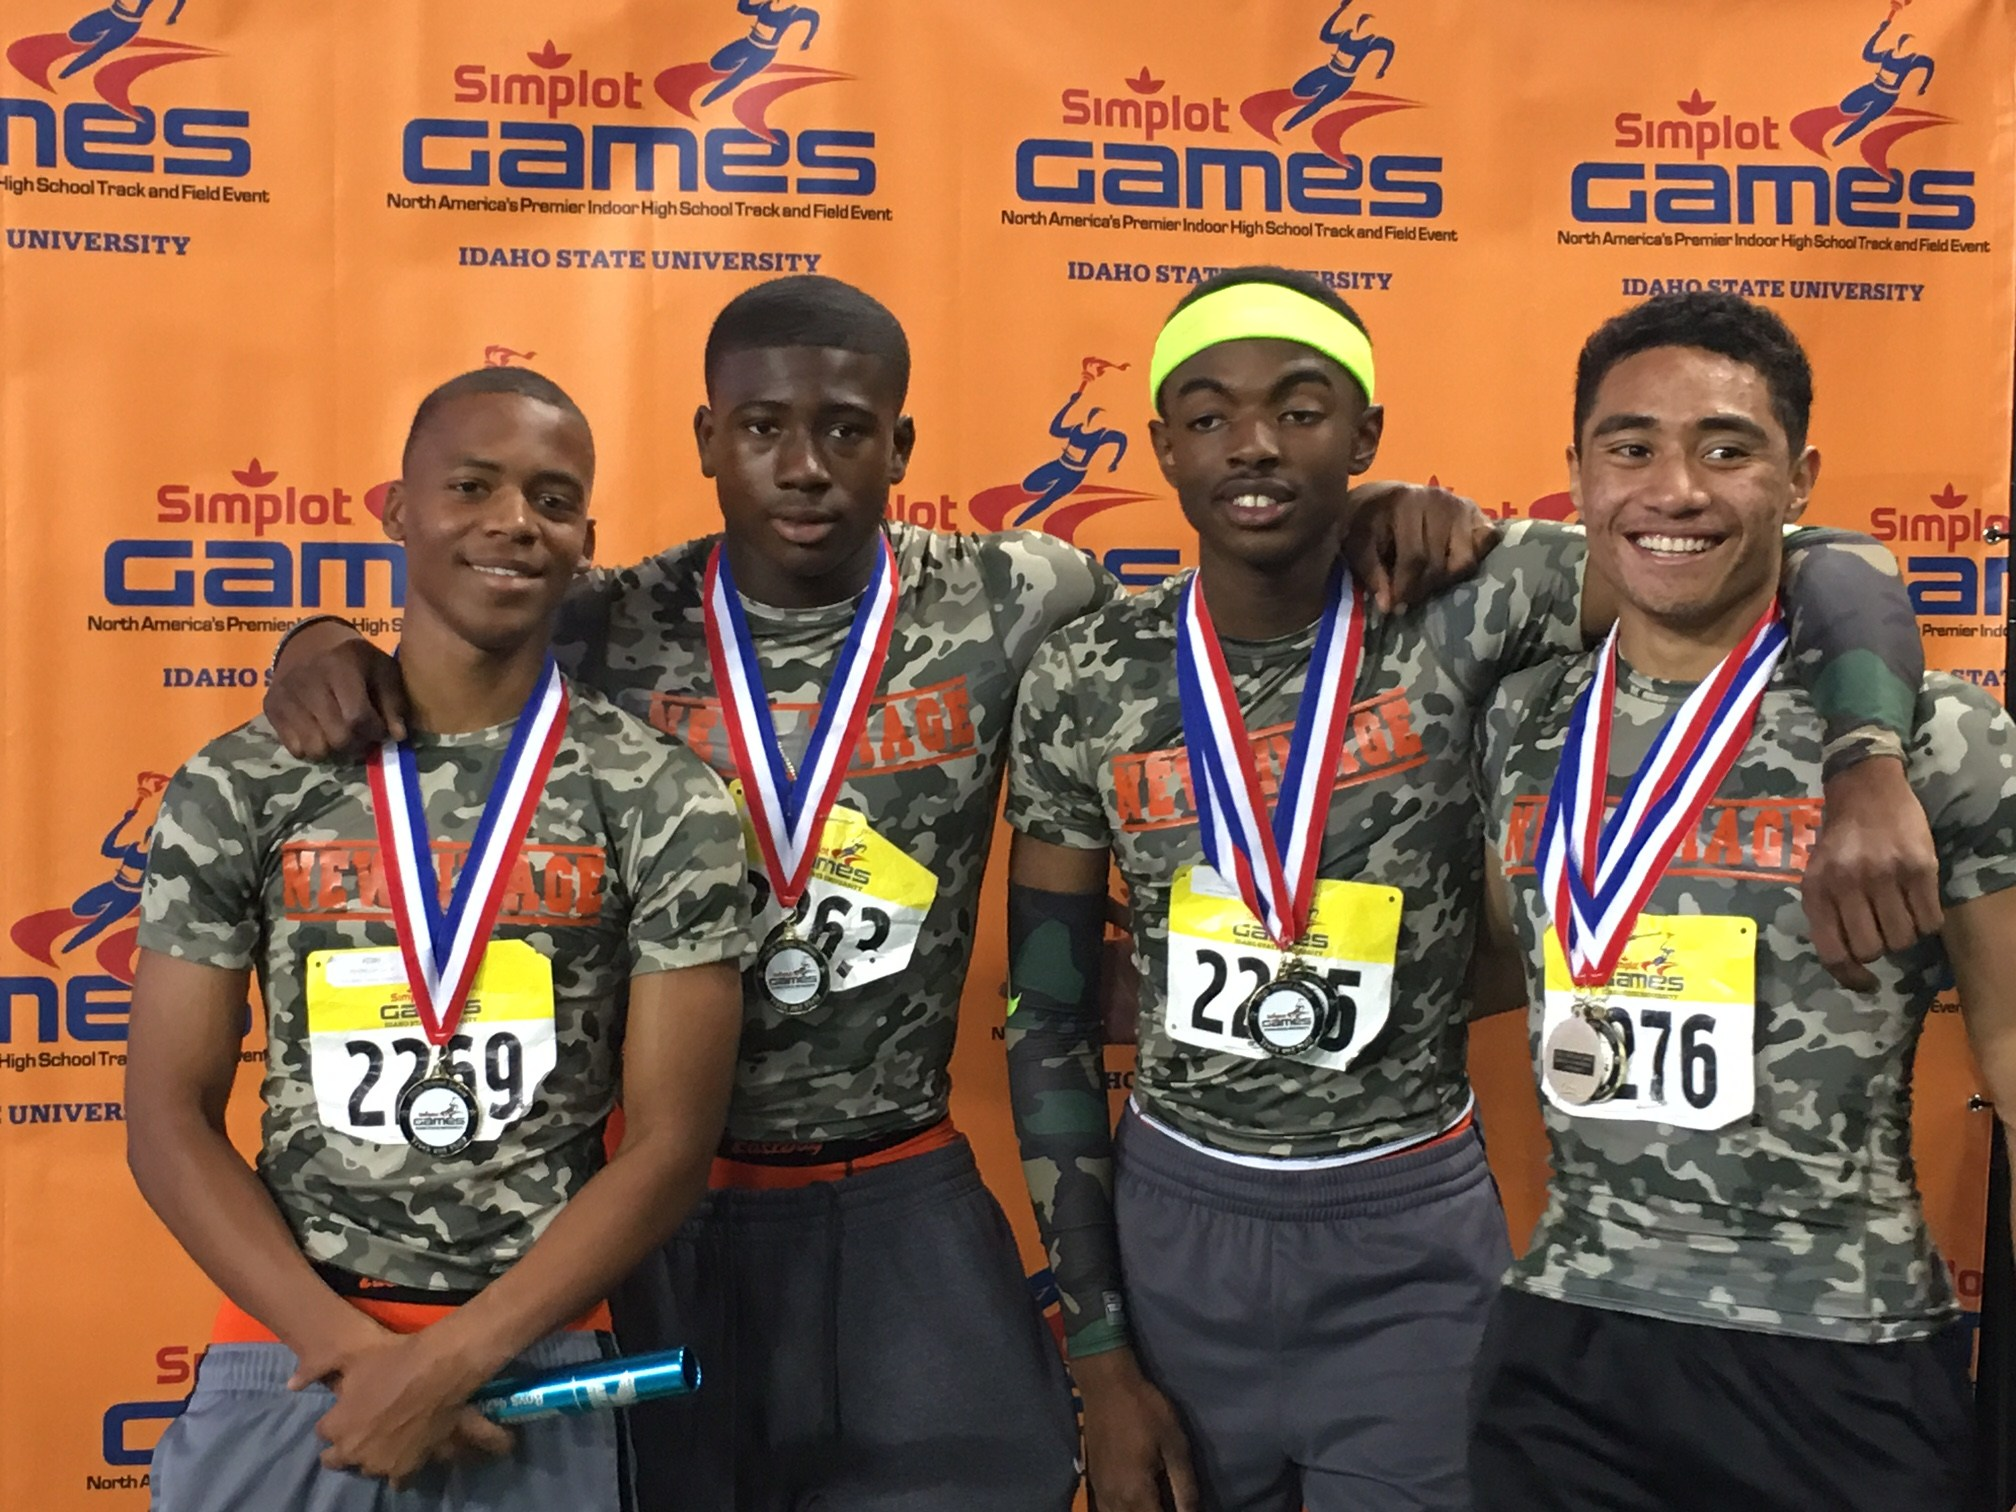 Underclass lineup makes podium at the 39th Simplot Games